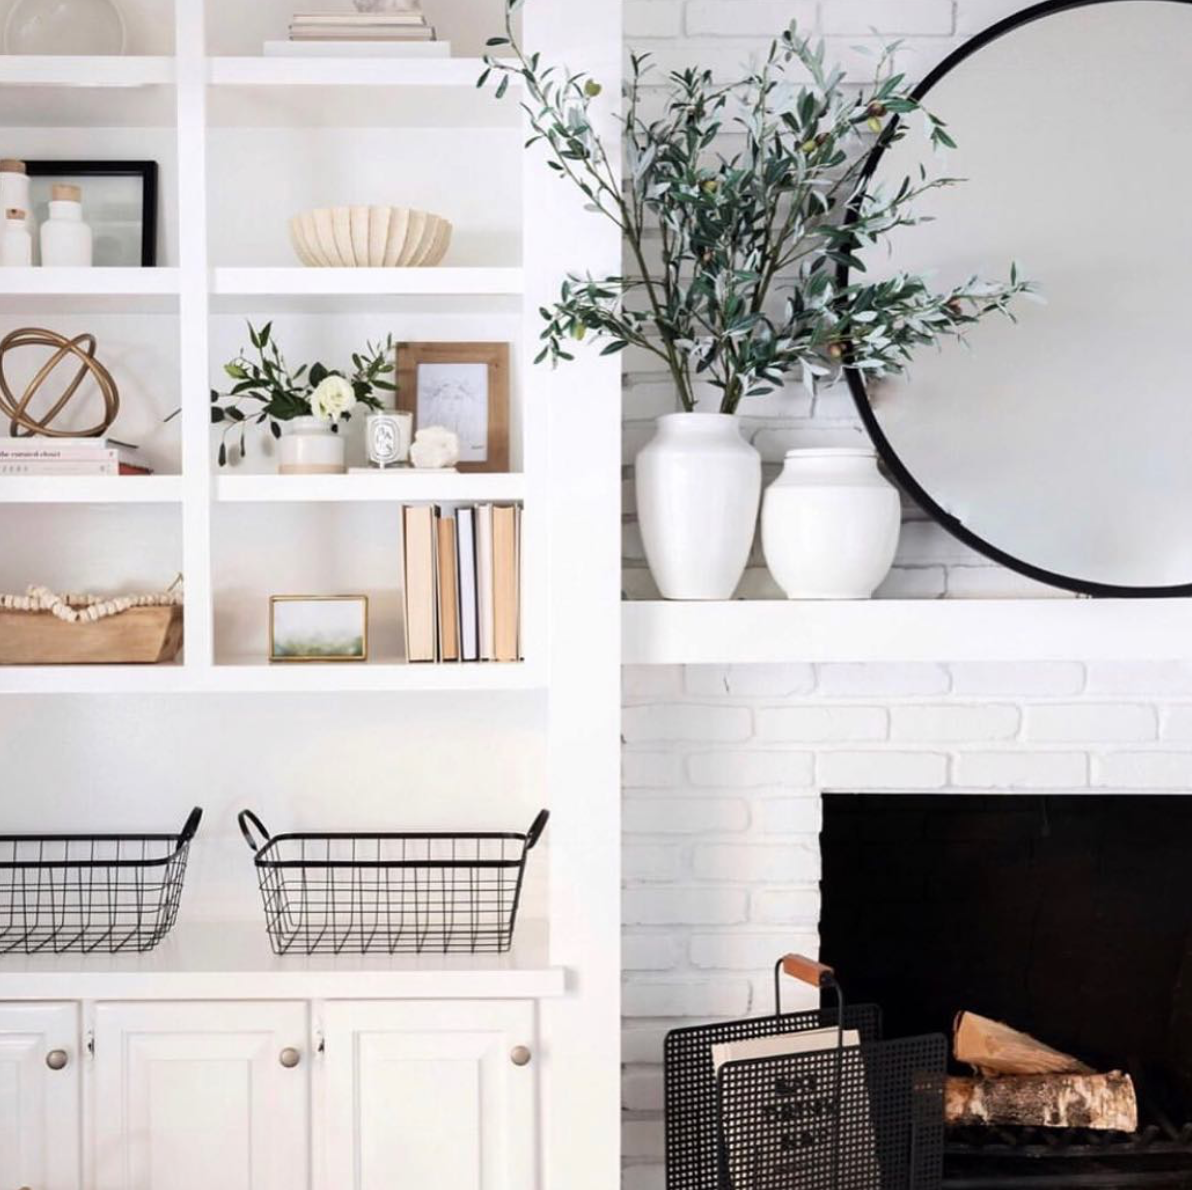 Lifestyle blogger Lexi of Glitter, Inc. shares a few little love notes to the things she loved most this week, including this living room shelfie situation, a chic $3 bow scrunchie, the sweetest love story, how to wake up smiling, chocolate rolls, and more. | glitterinc.com | @glitterinc